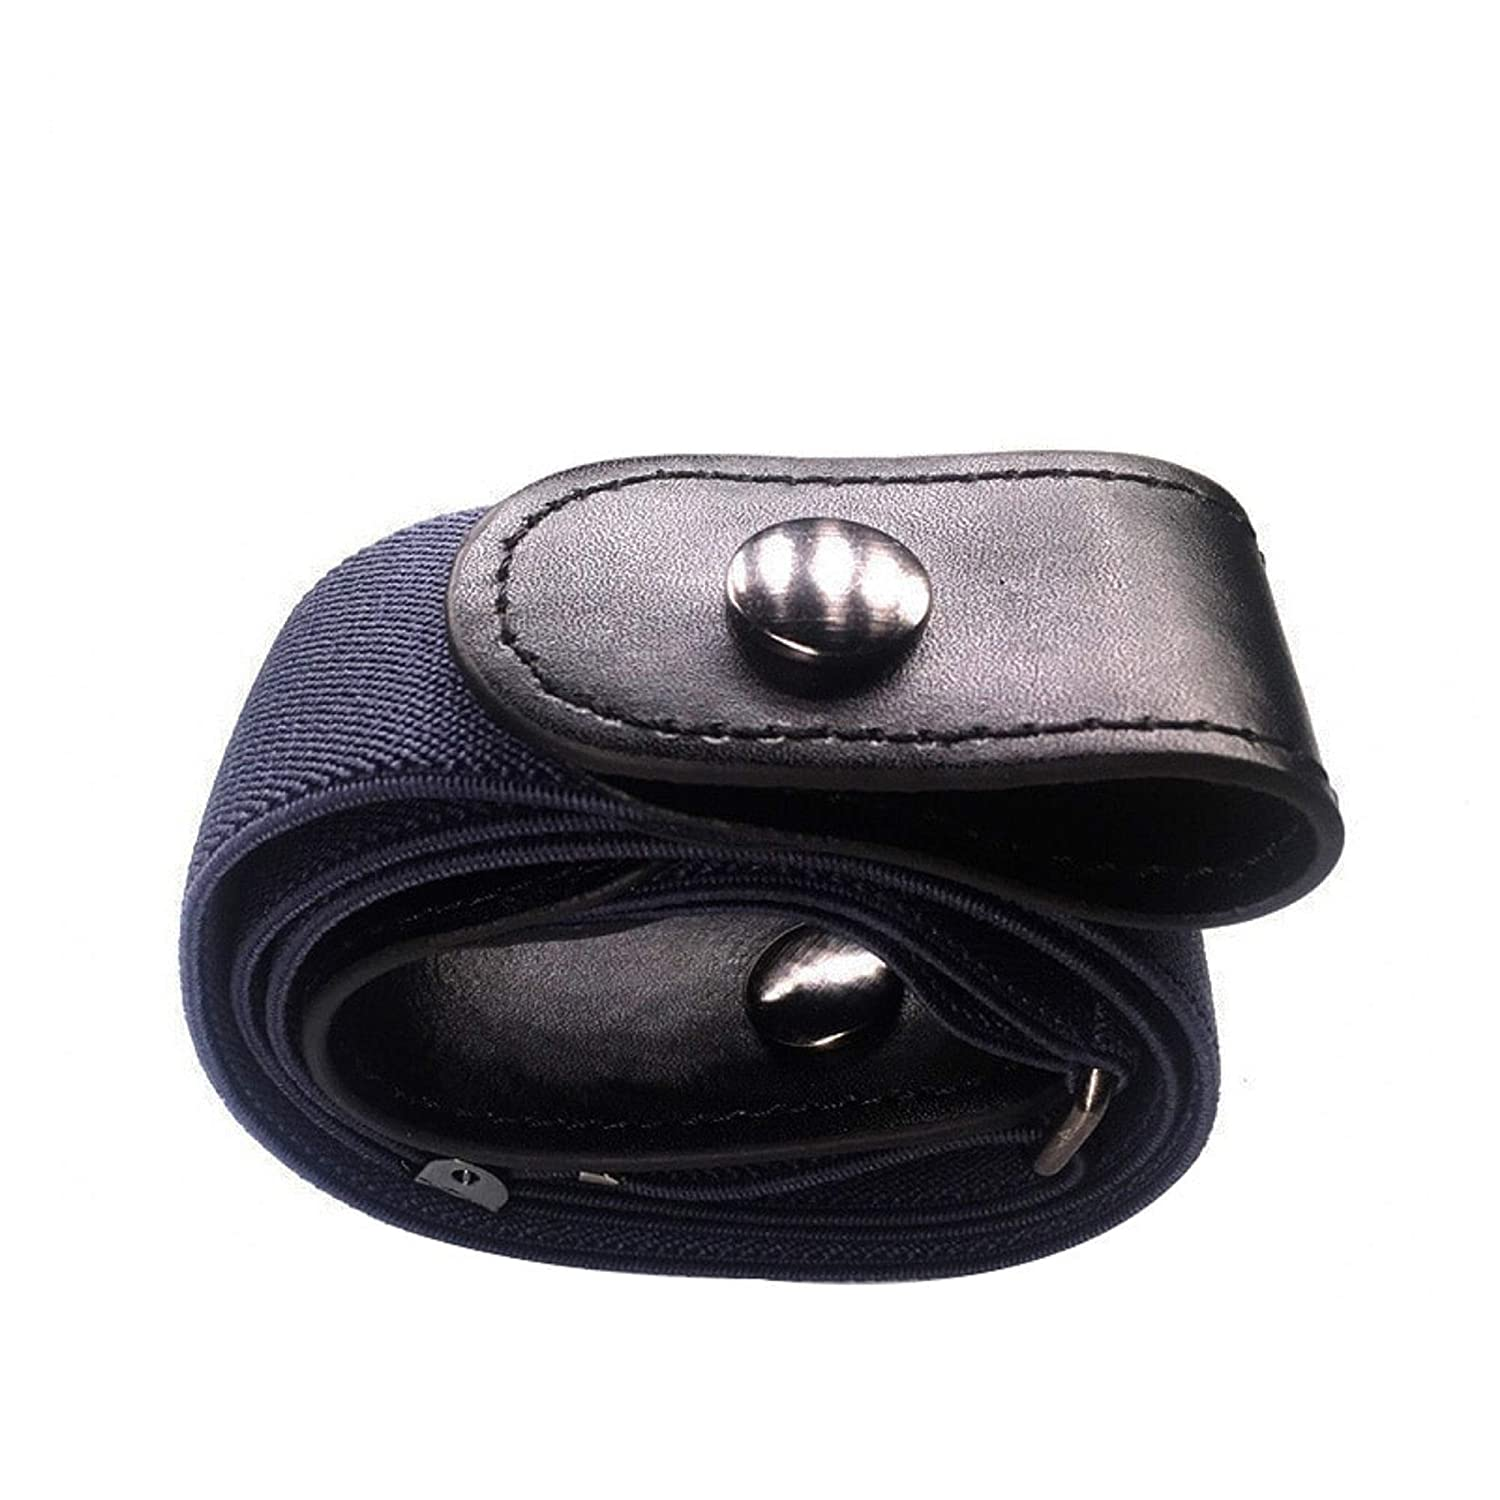 Super Comfortable Invisible Elastic Unisex Belt for Jeans Easy to Use and Adjustable No Buckle Belts for Men and Women